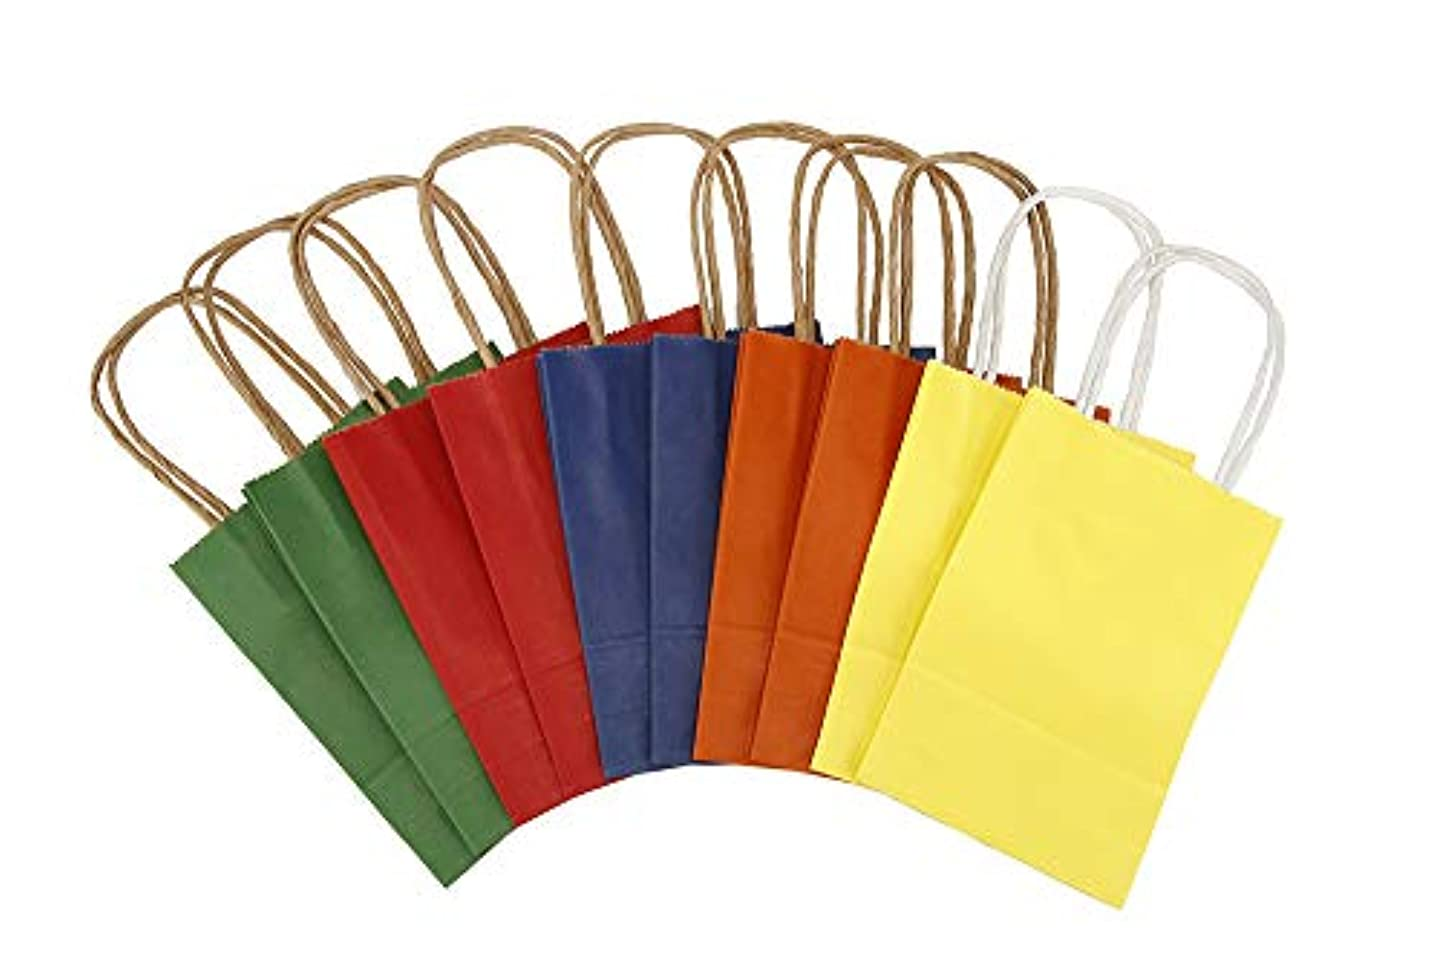 Darice Colored Value Assorted, 4.72 x 6.70 inches, 10 Pack Gift Bag, 4.72 X 6.70 X 1.97, 6 Pieces